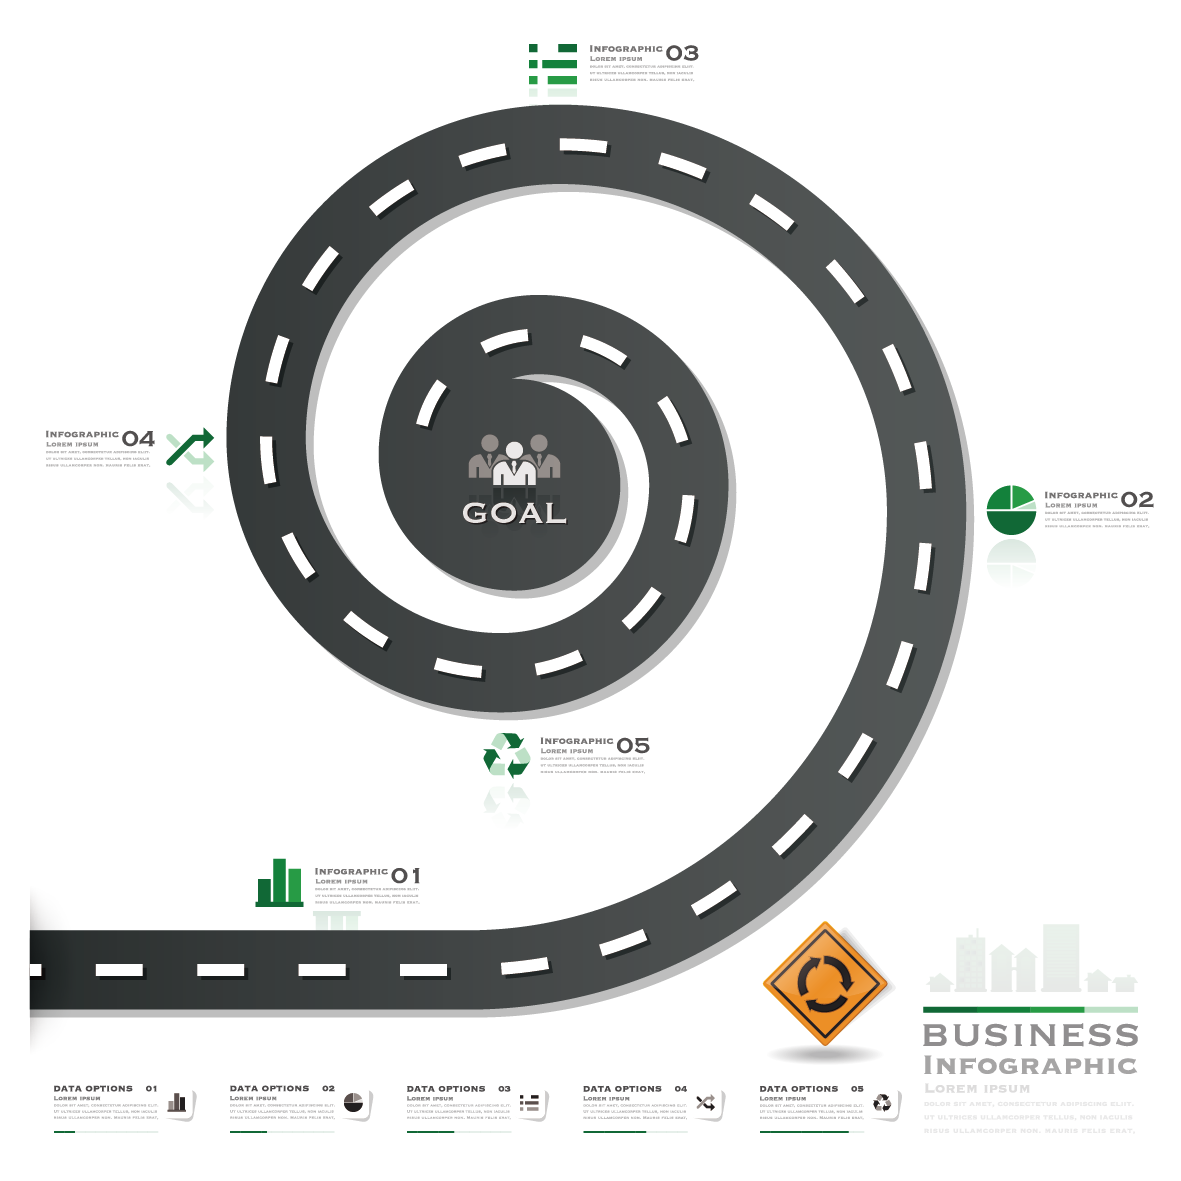 Vector roads infographic. Road street rotating the